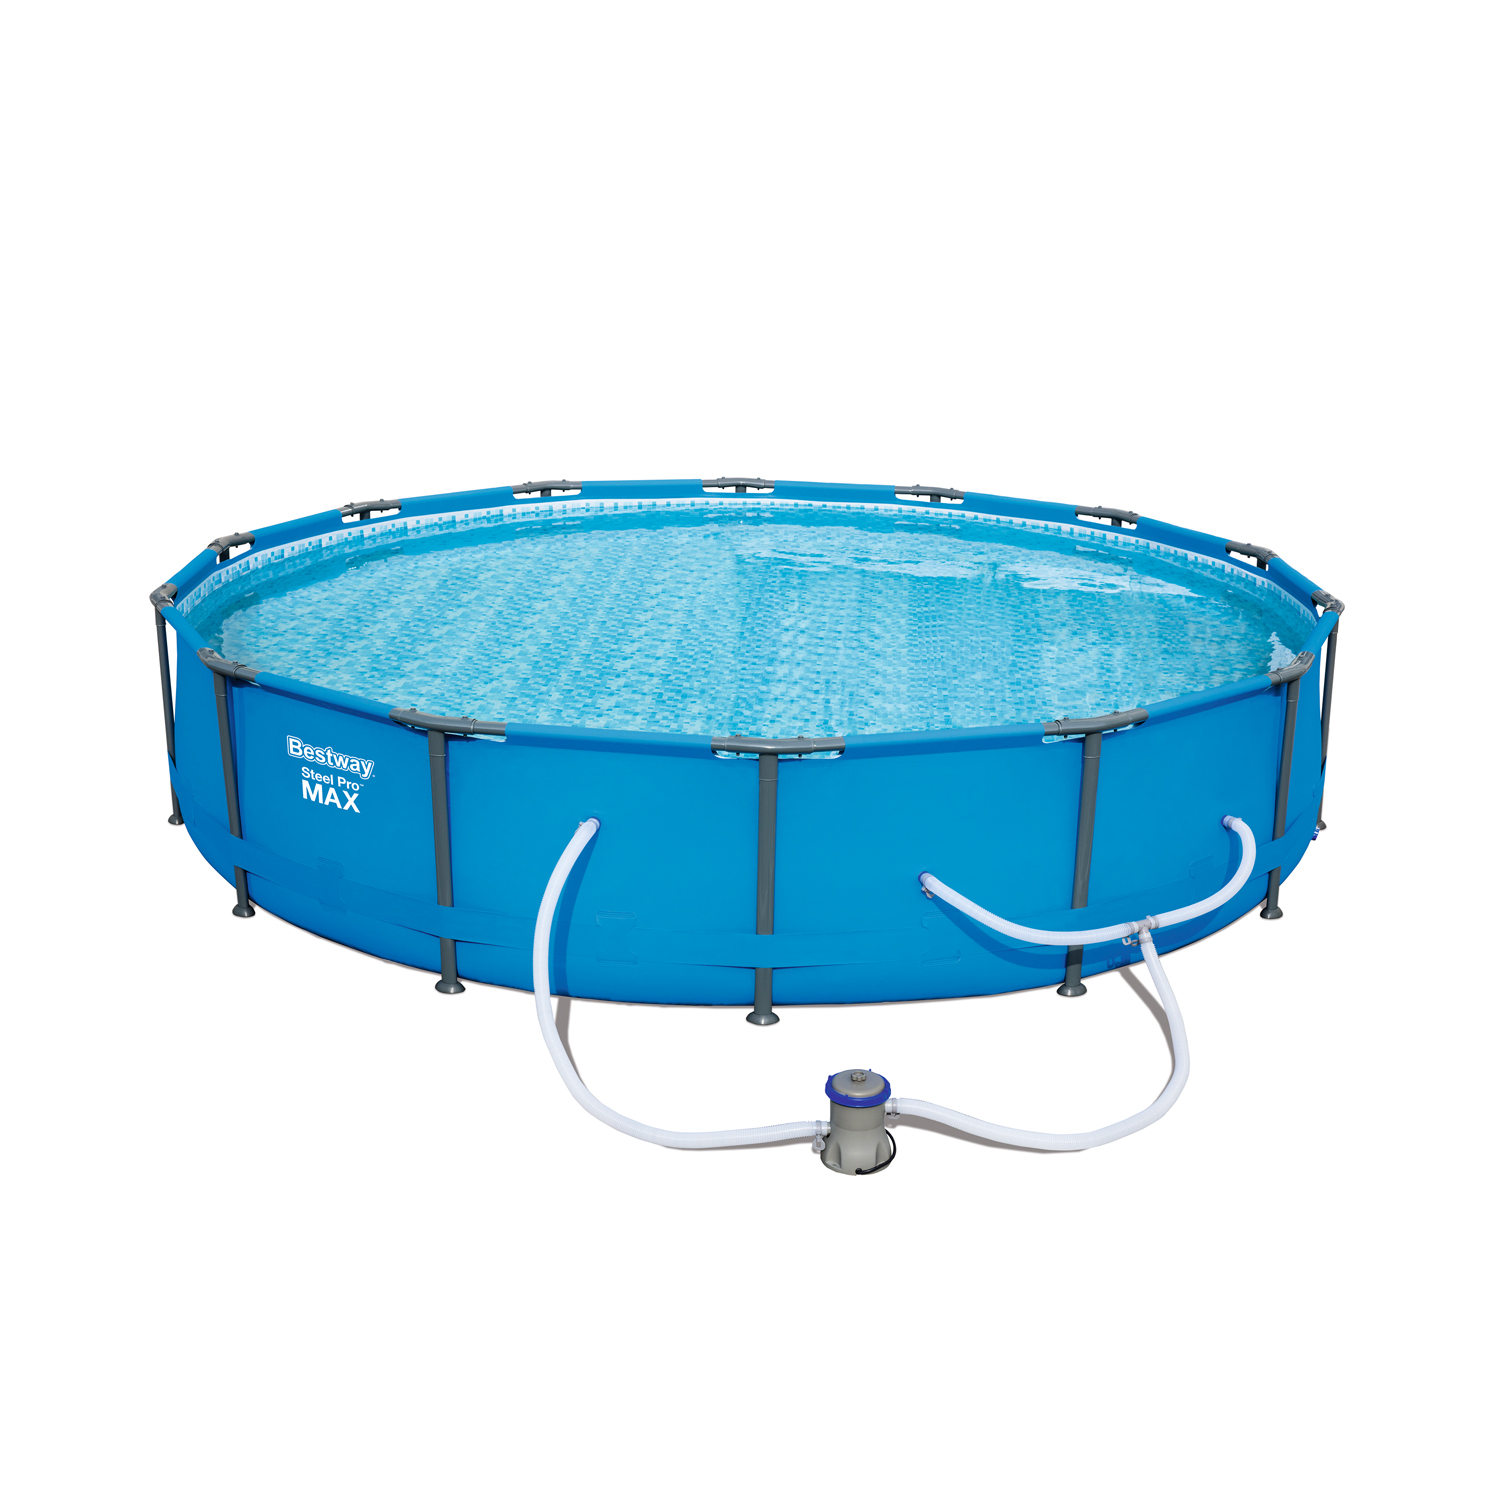 """Bestway Steel Pro MAX 14'x33"""" Above Ground Swimming Pool Set with Filter Pump"""